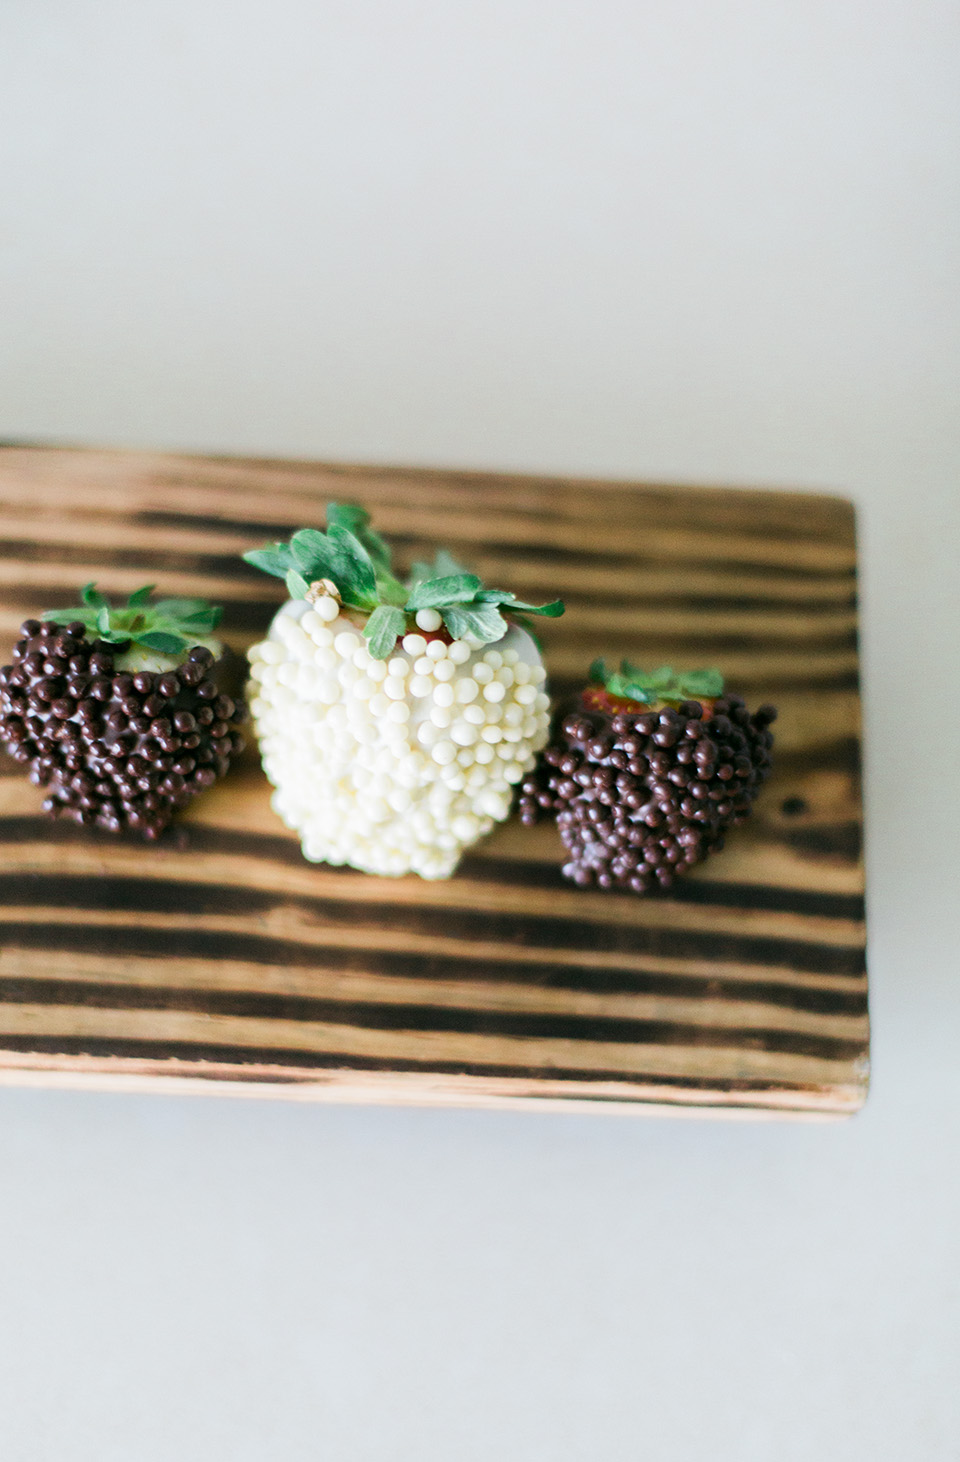 Image of chocolate covered strawberries on a wooden board at the Omni Amelia Island Plantation Resort.